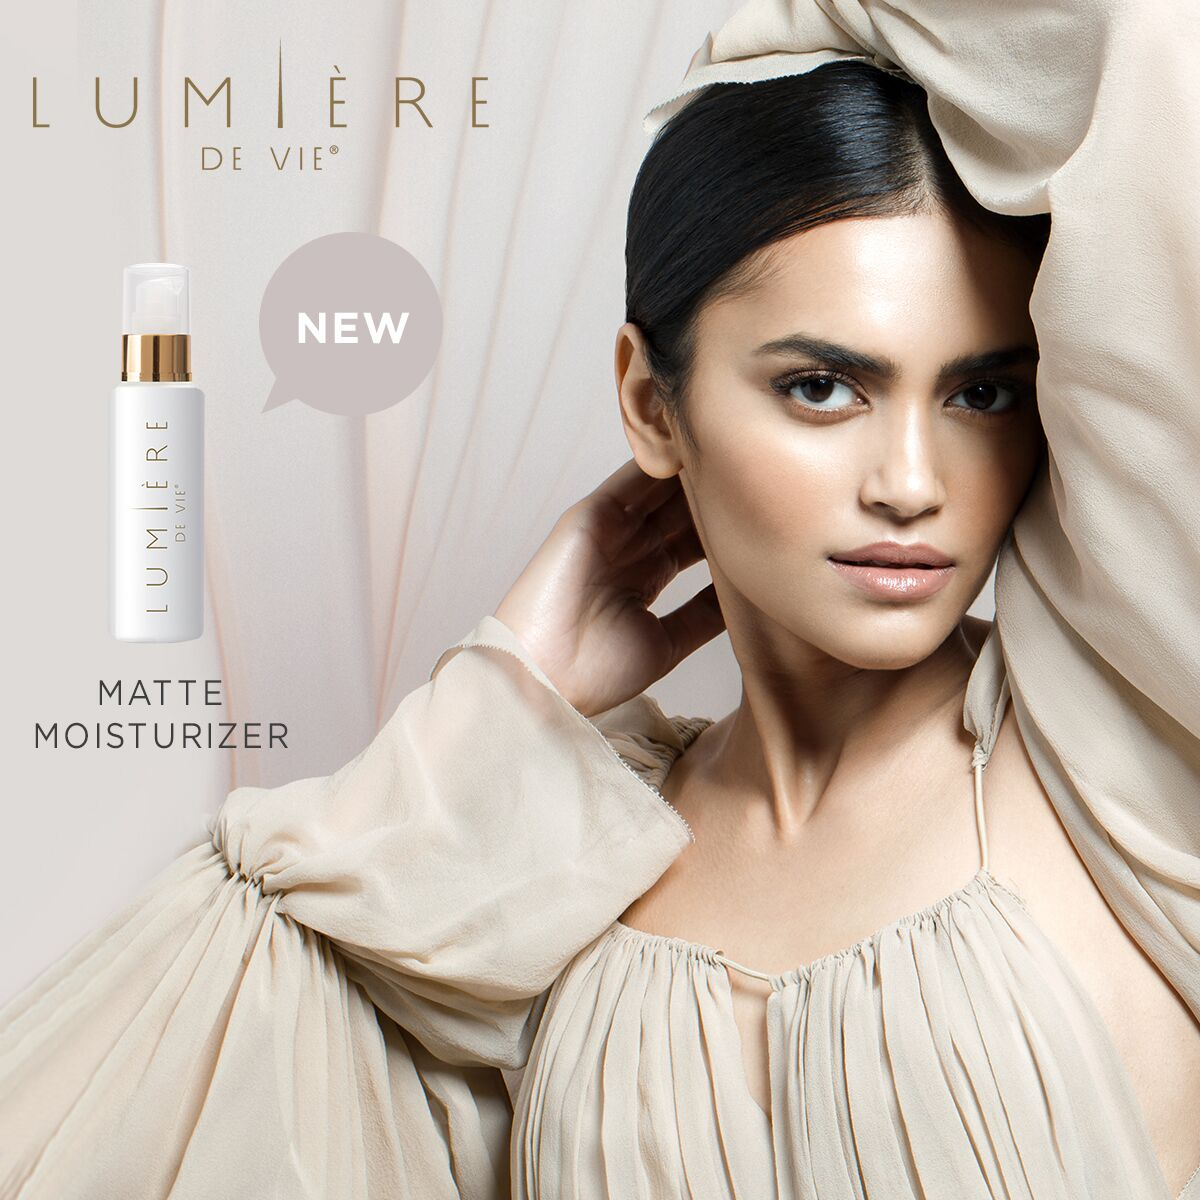 Introducing Lumiere de Vie Matte Moisturizer